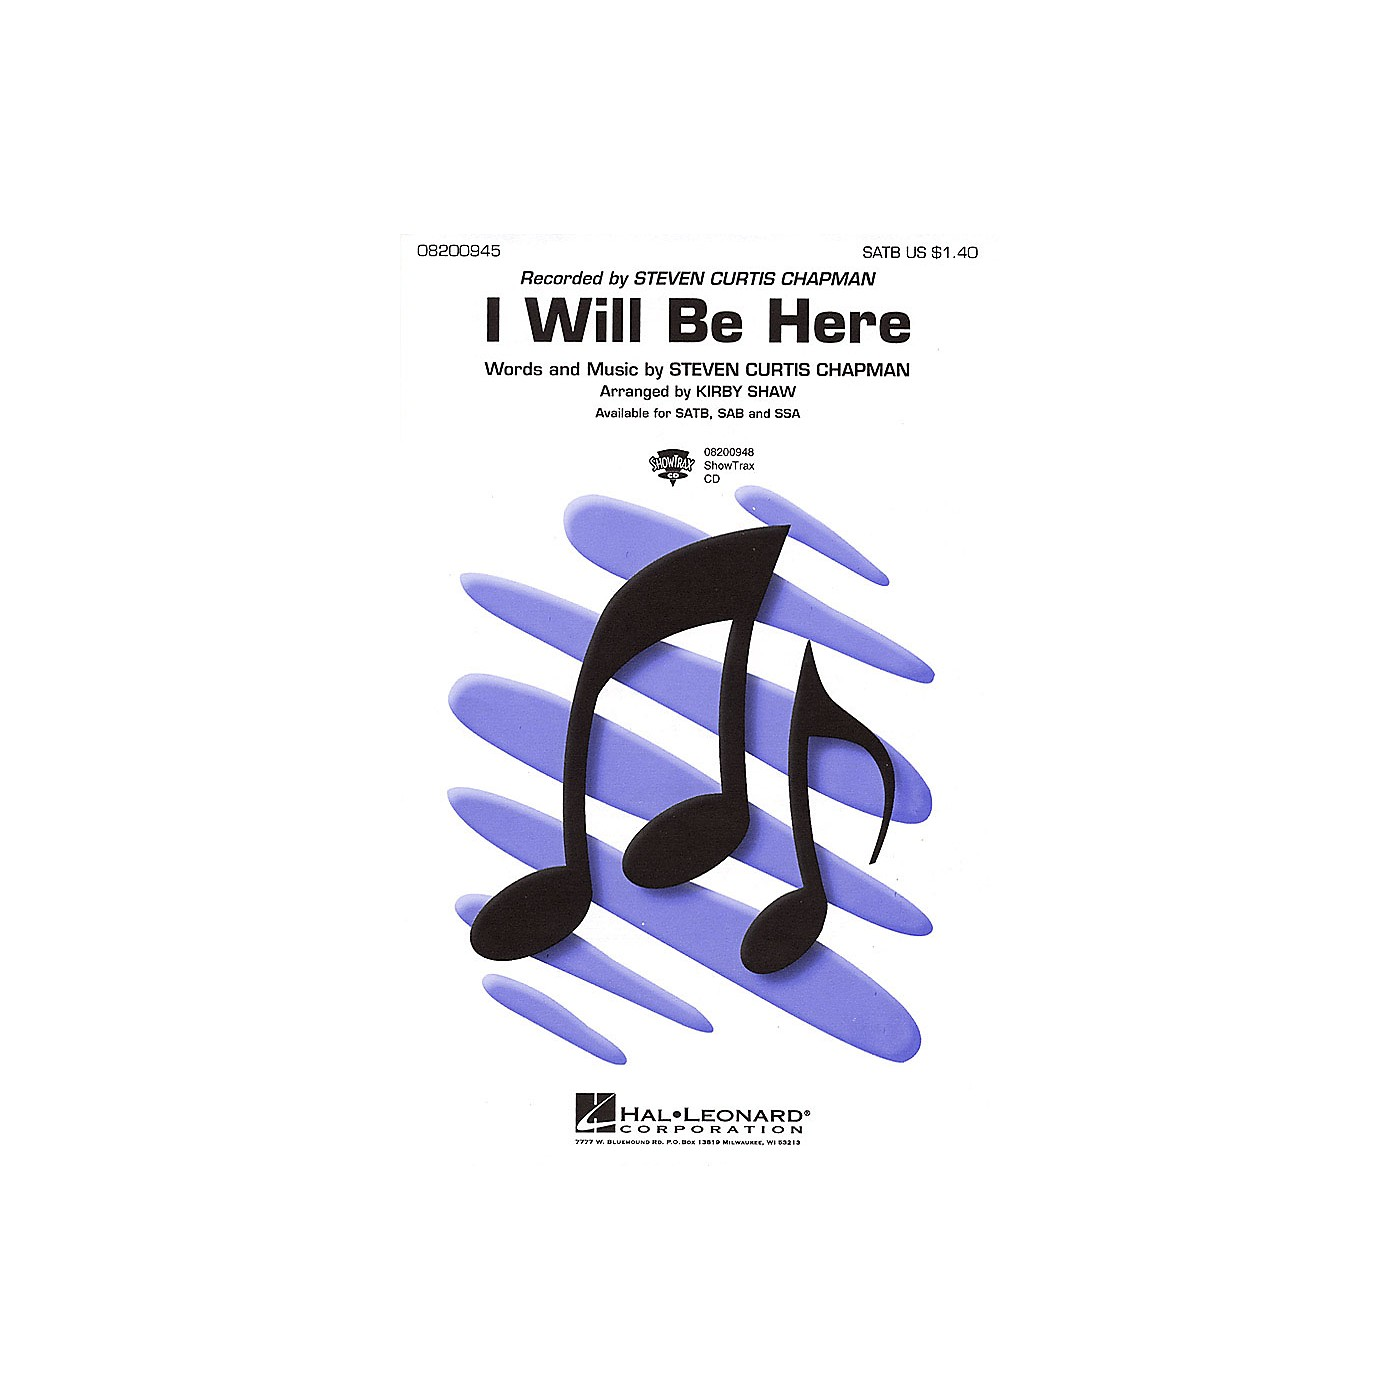 Hal Leonard I Will Be Here SATB by Steven Curtis Chapman arranged by Kirby Shaw thumbnail